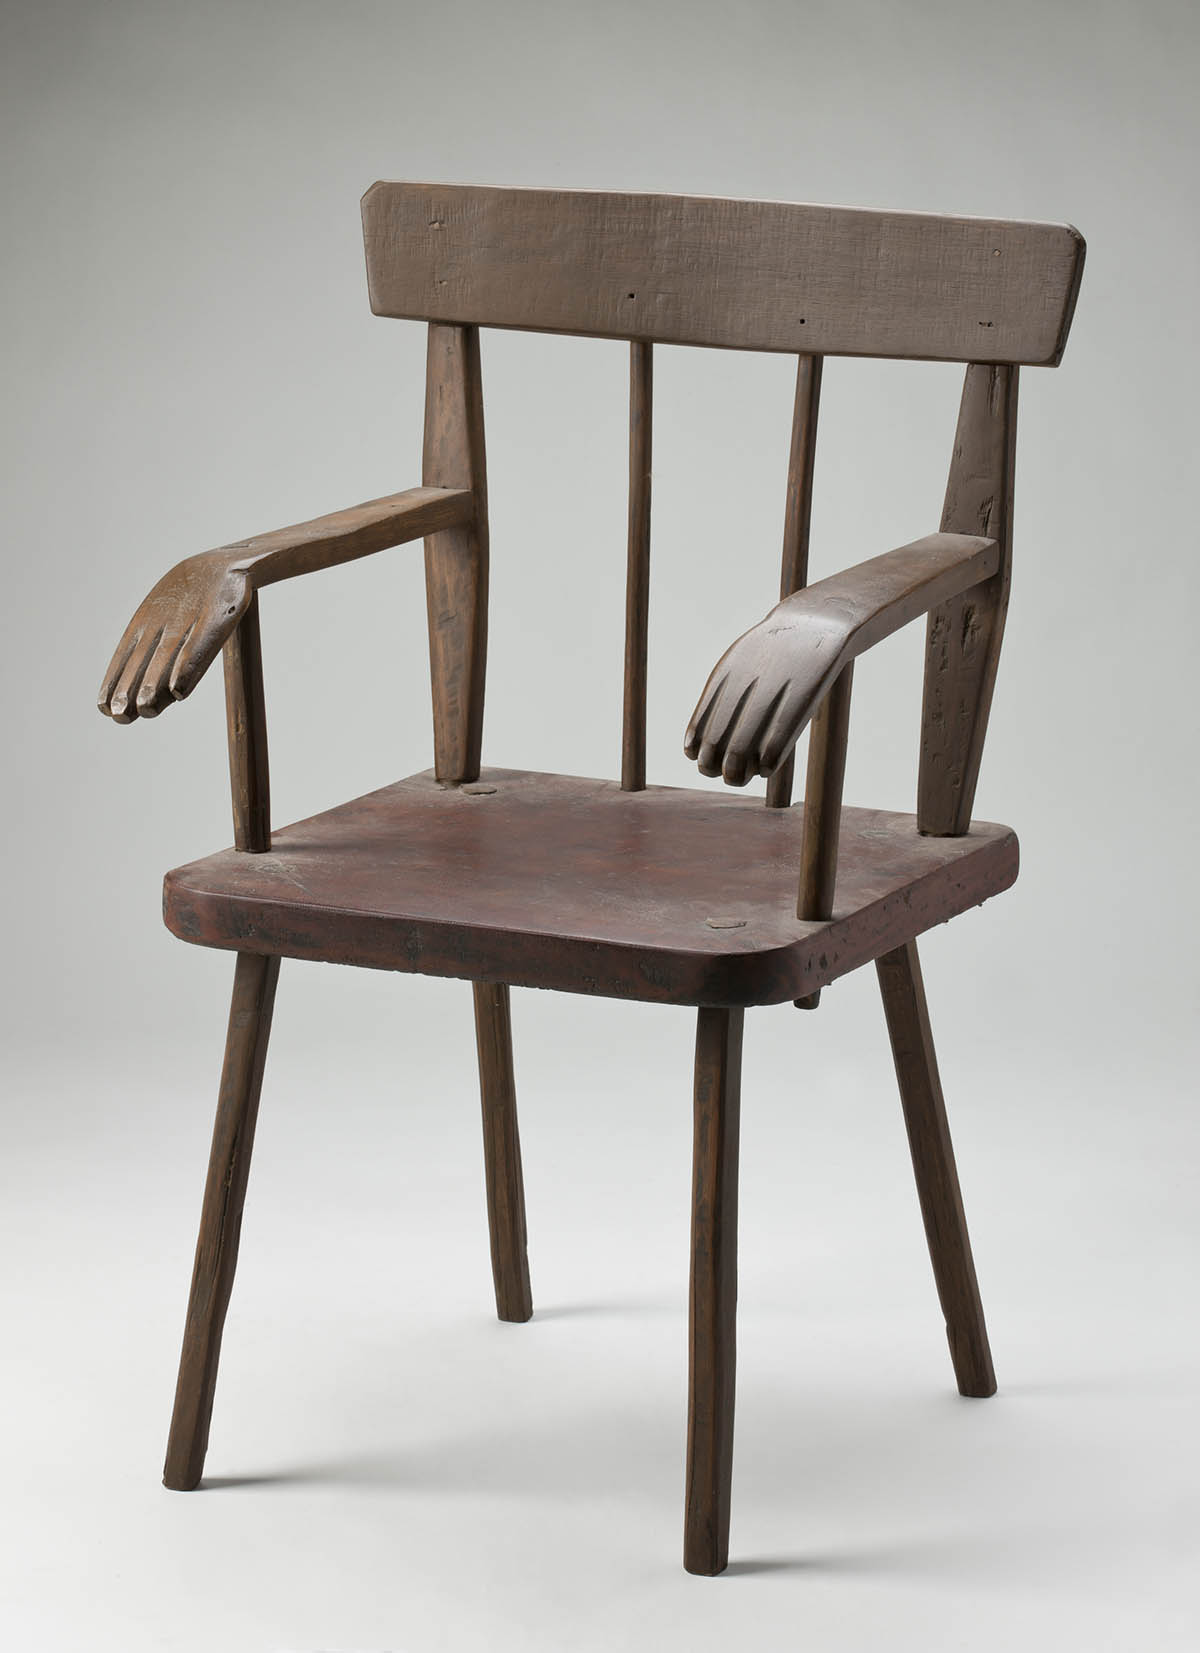 A wooden chair with decorative carved hands at the end of each arm. - click to view larger image